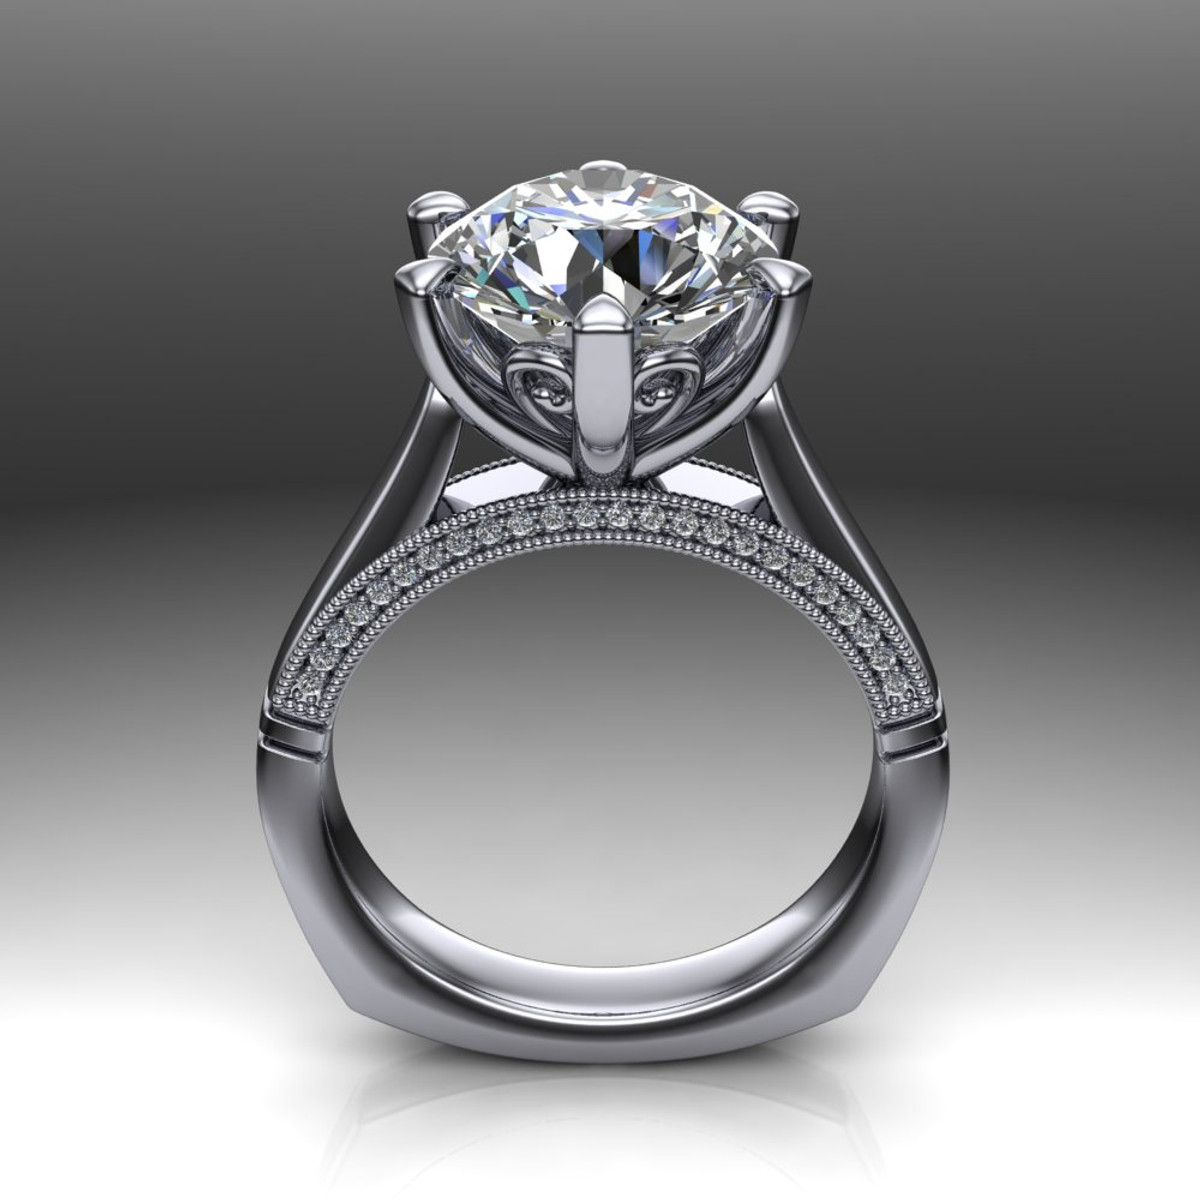 cathedral diamond gems jewels cushion puregemsjewels made product rings solitaire pure engagement man tapered ring cut